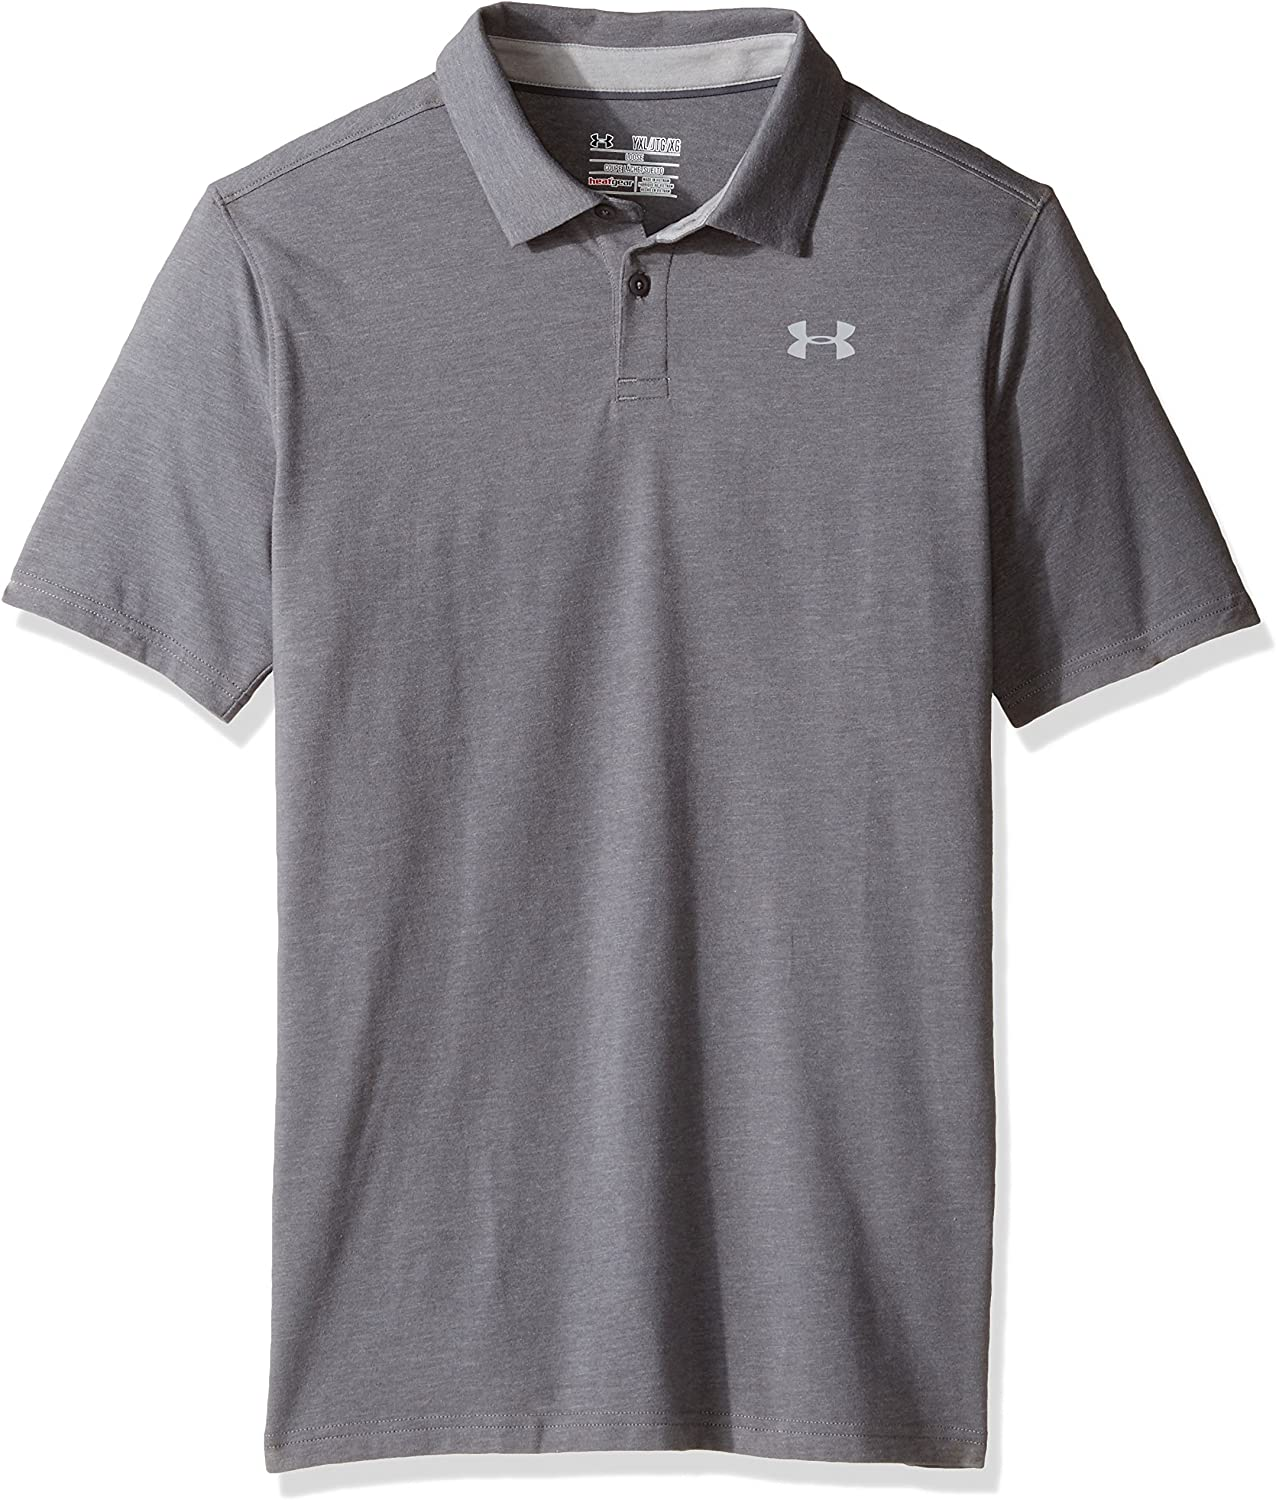 Under Armour Boys Charged Cotton Heather Polo Short Sleeves Short Sleeve Shirt